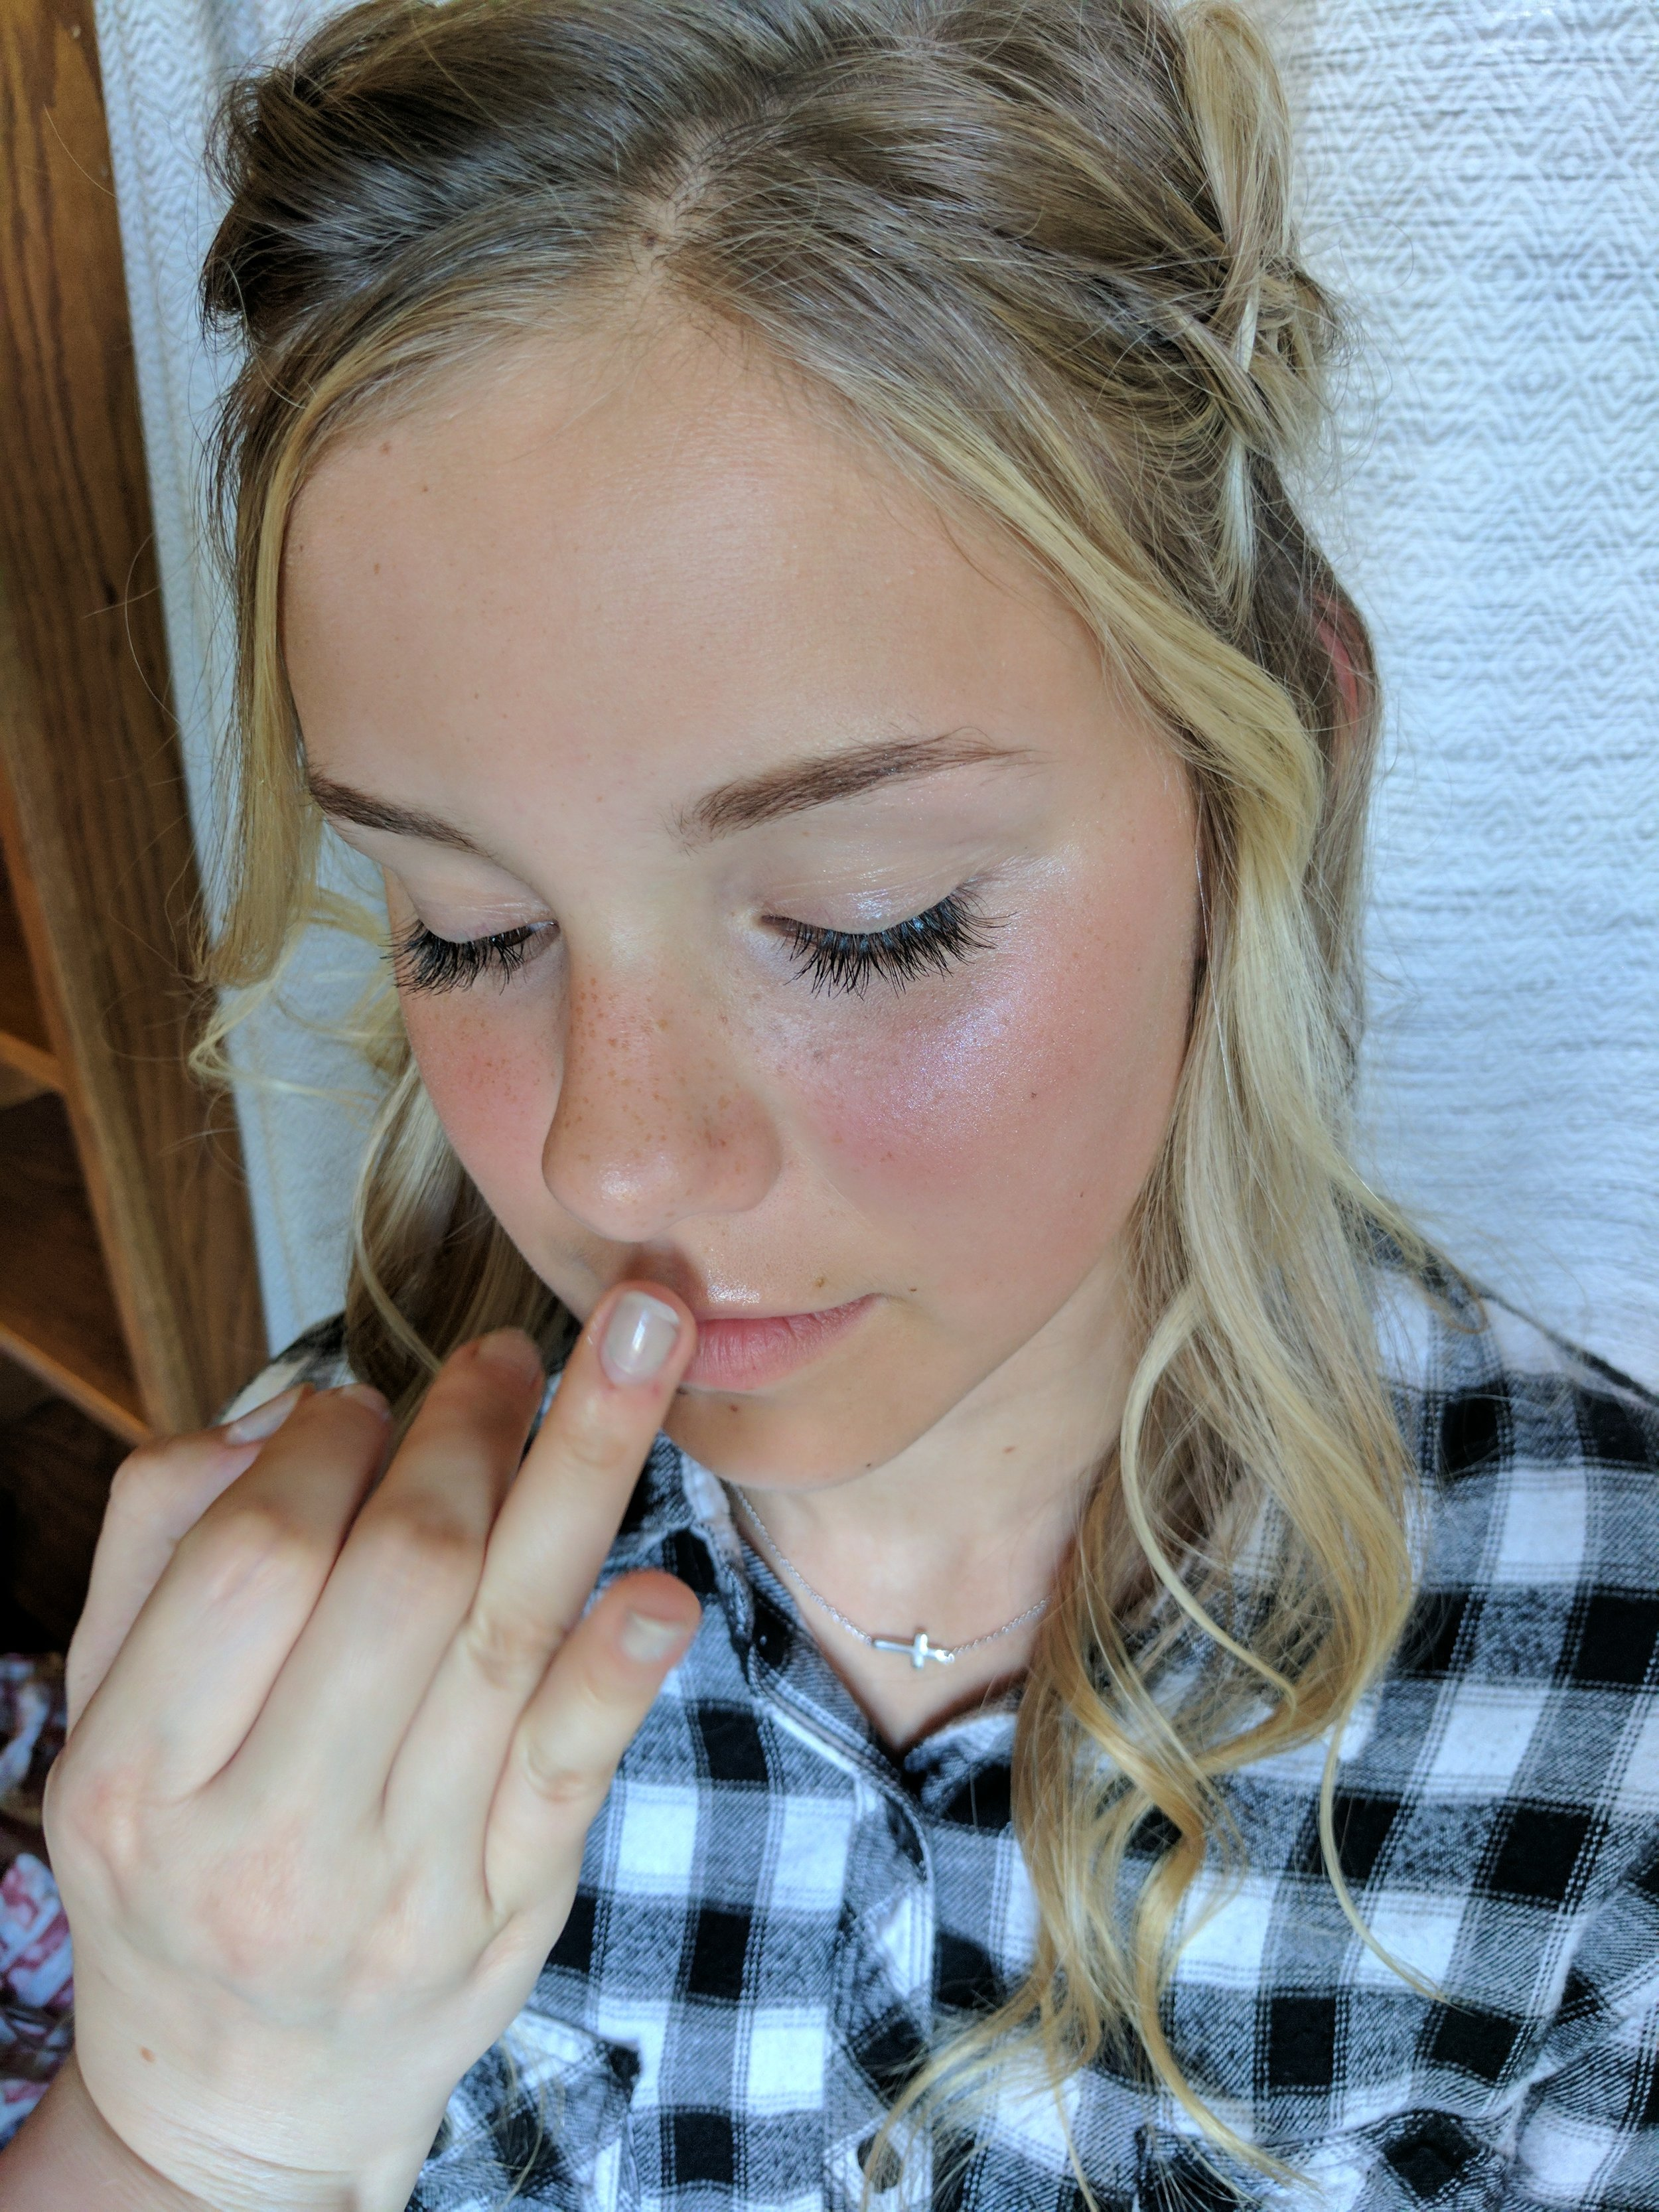 Pro Tips for quick simple makeup